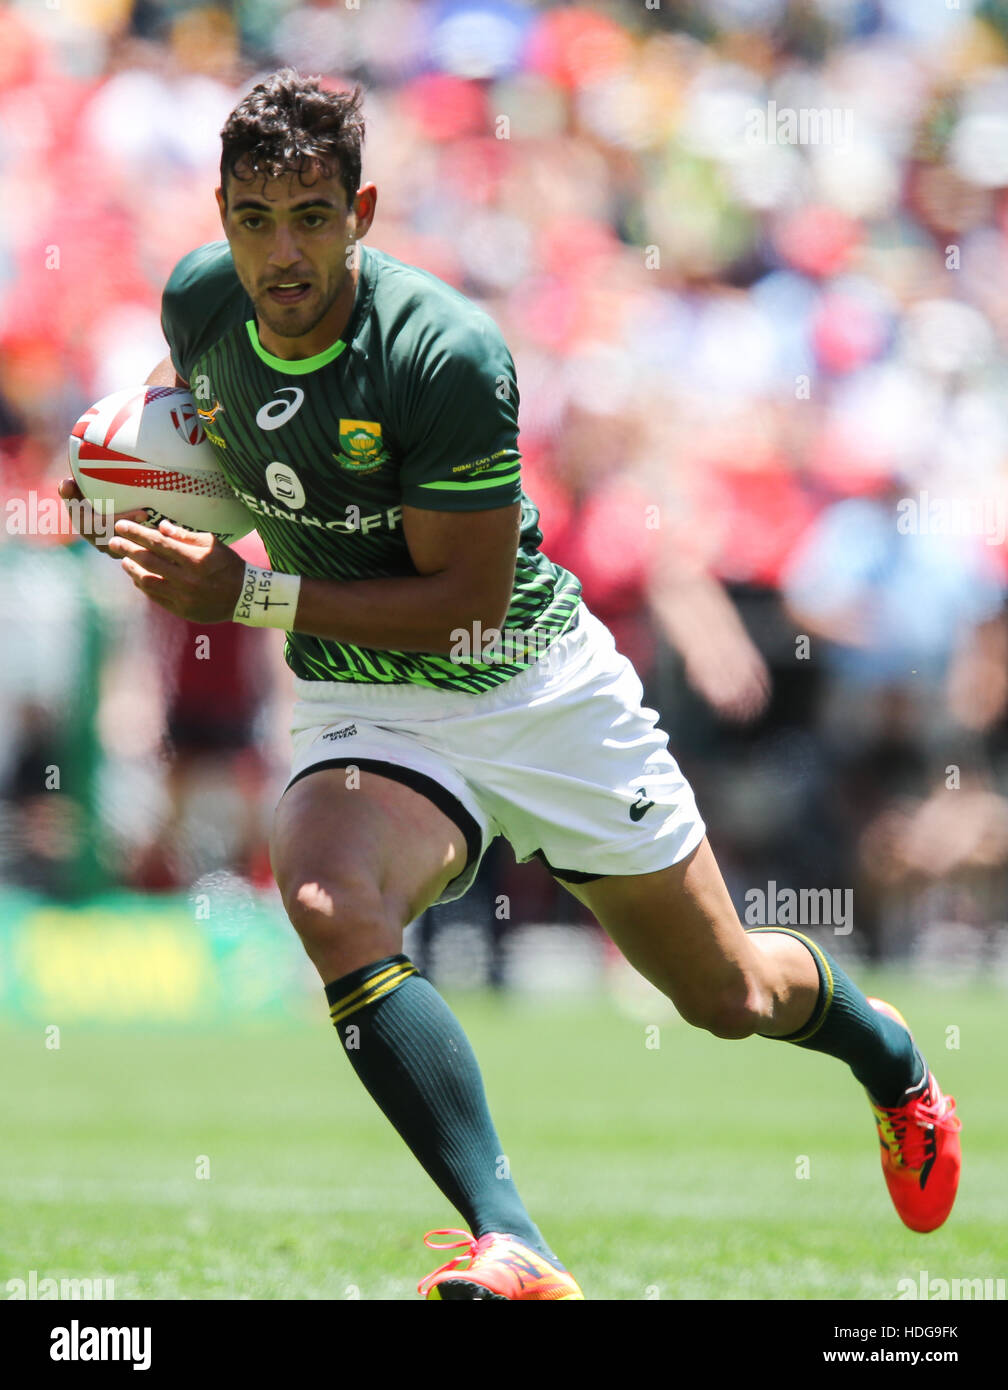 The SA Rugby Springbok Sevens players in action during the 2016 HSBC Sevens tournament at the Cape Town Stadium - Stock Image